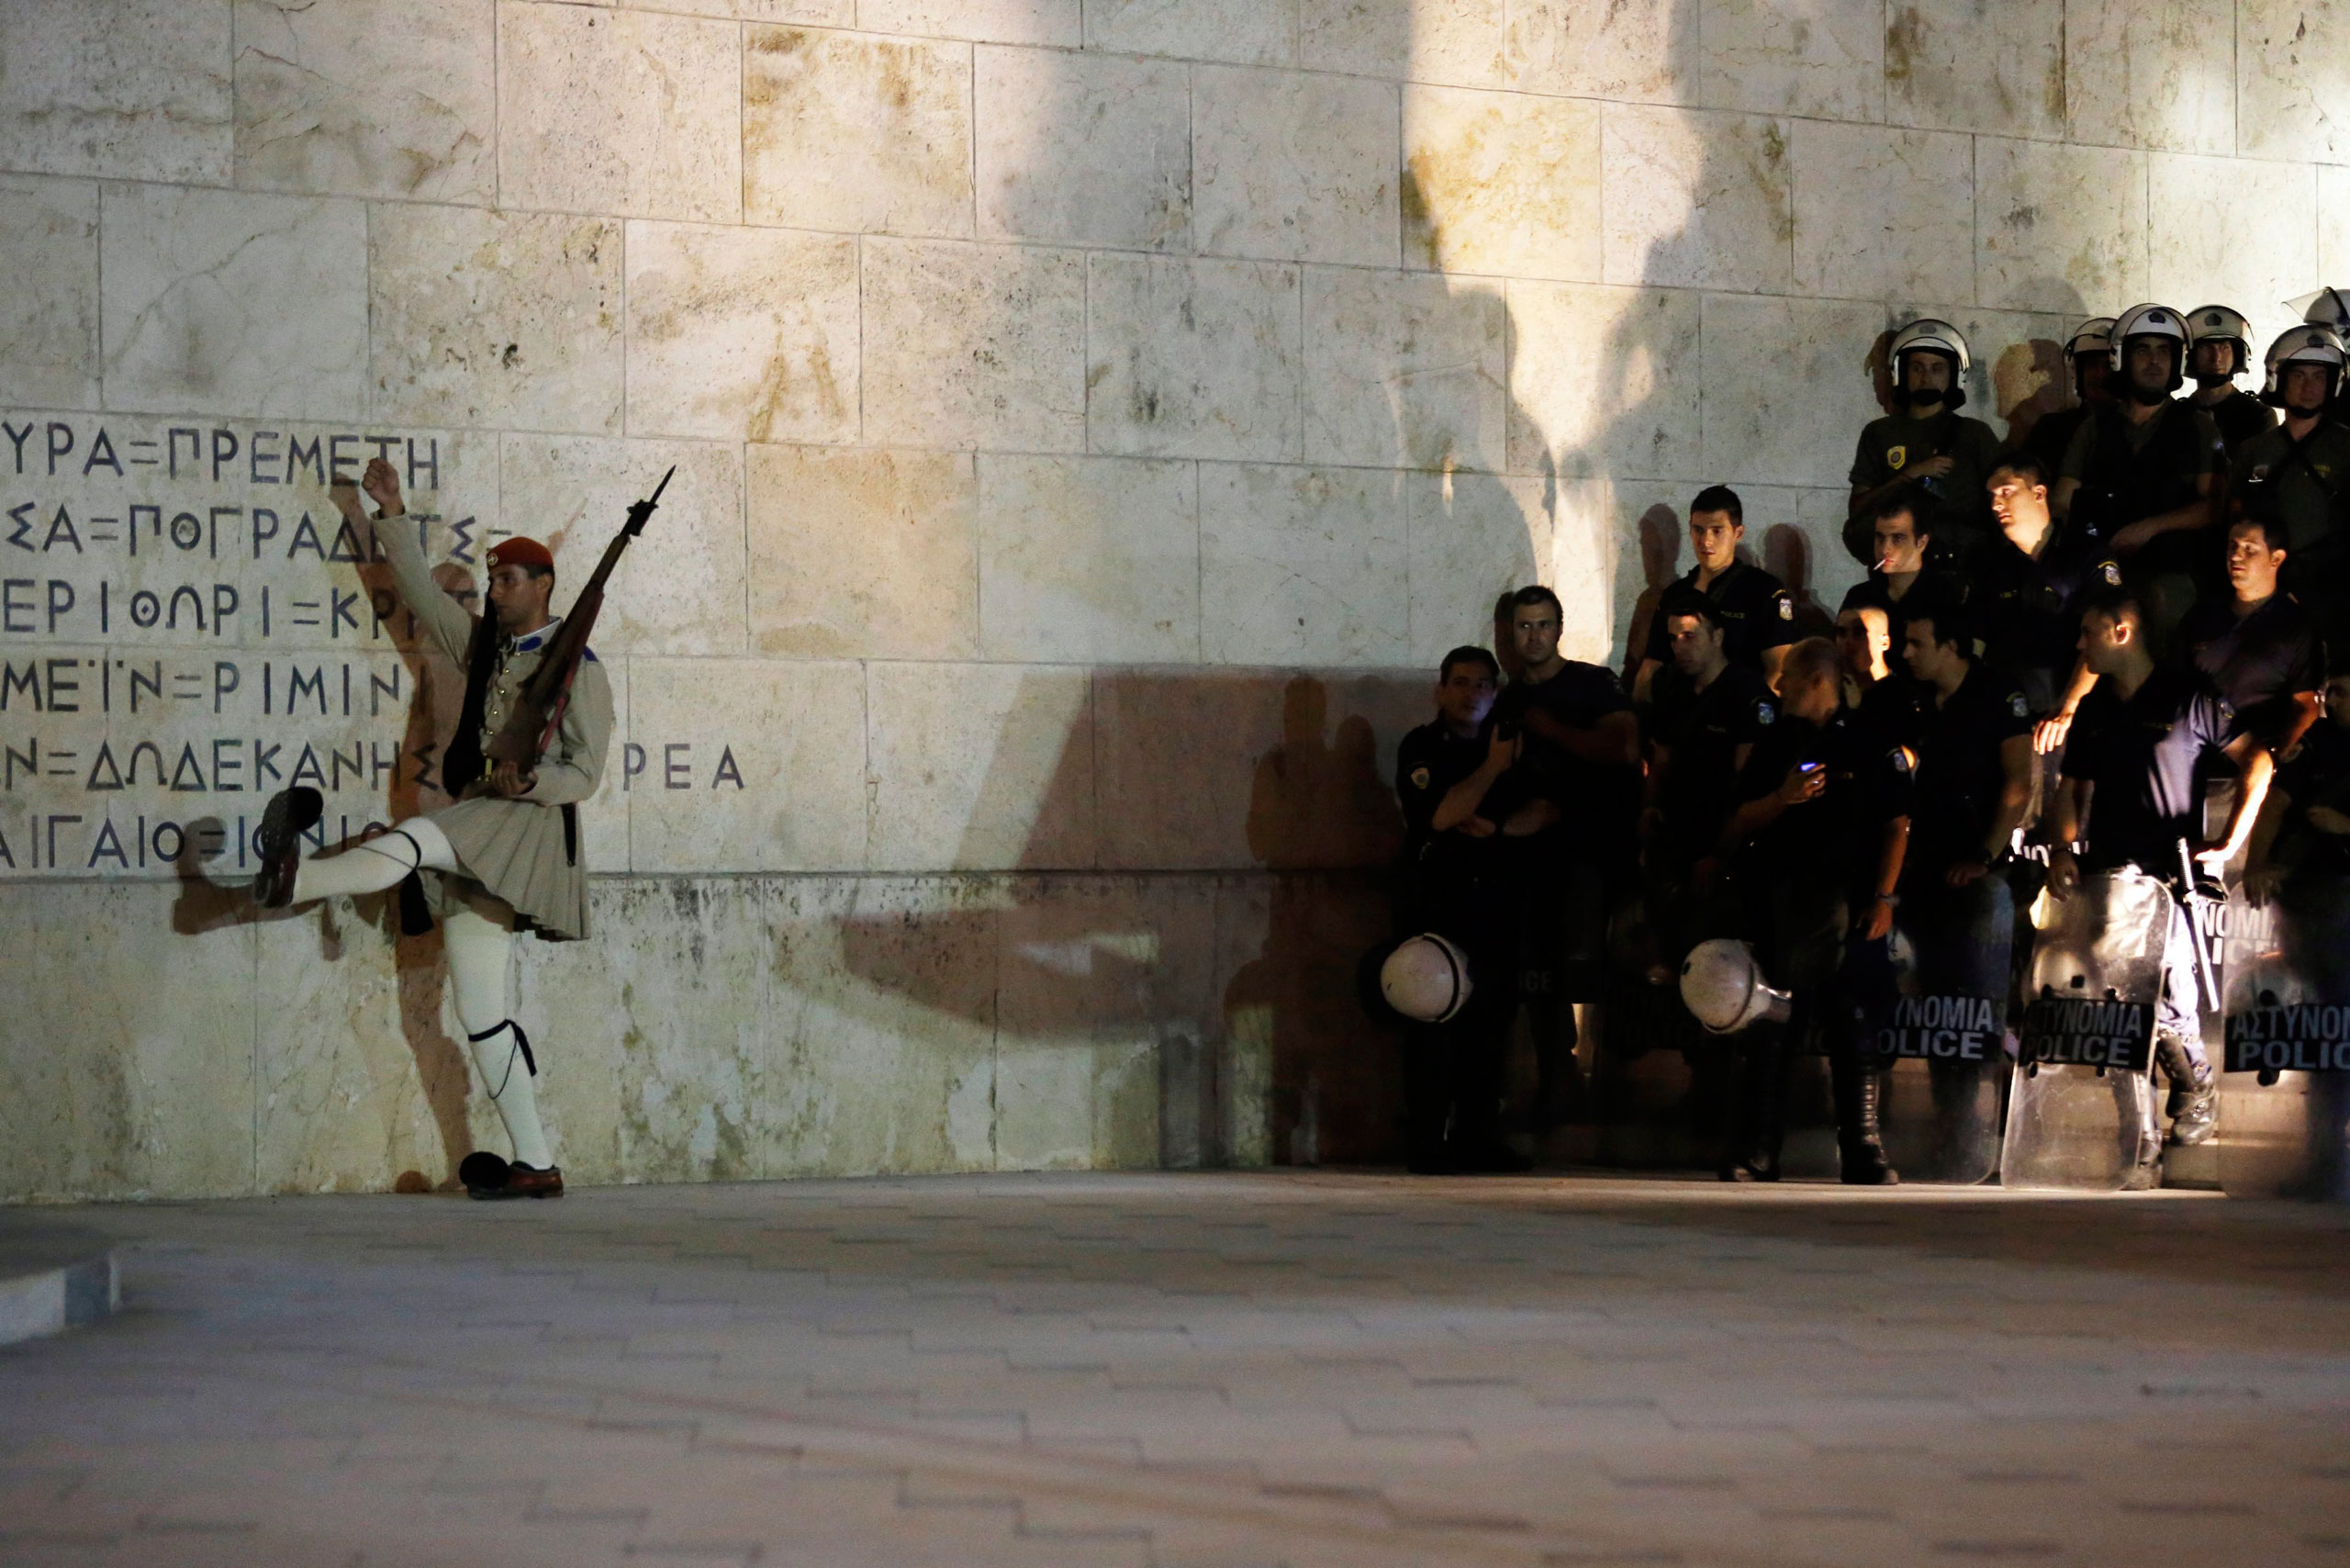 Greek special forces members guard the Parliament in Syntagma Square after the referendum in Athens on July 5, 2015.